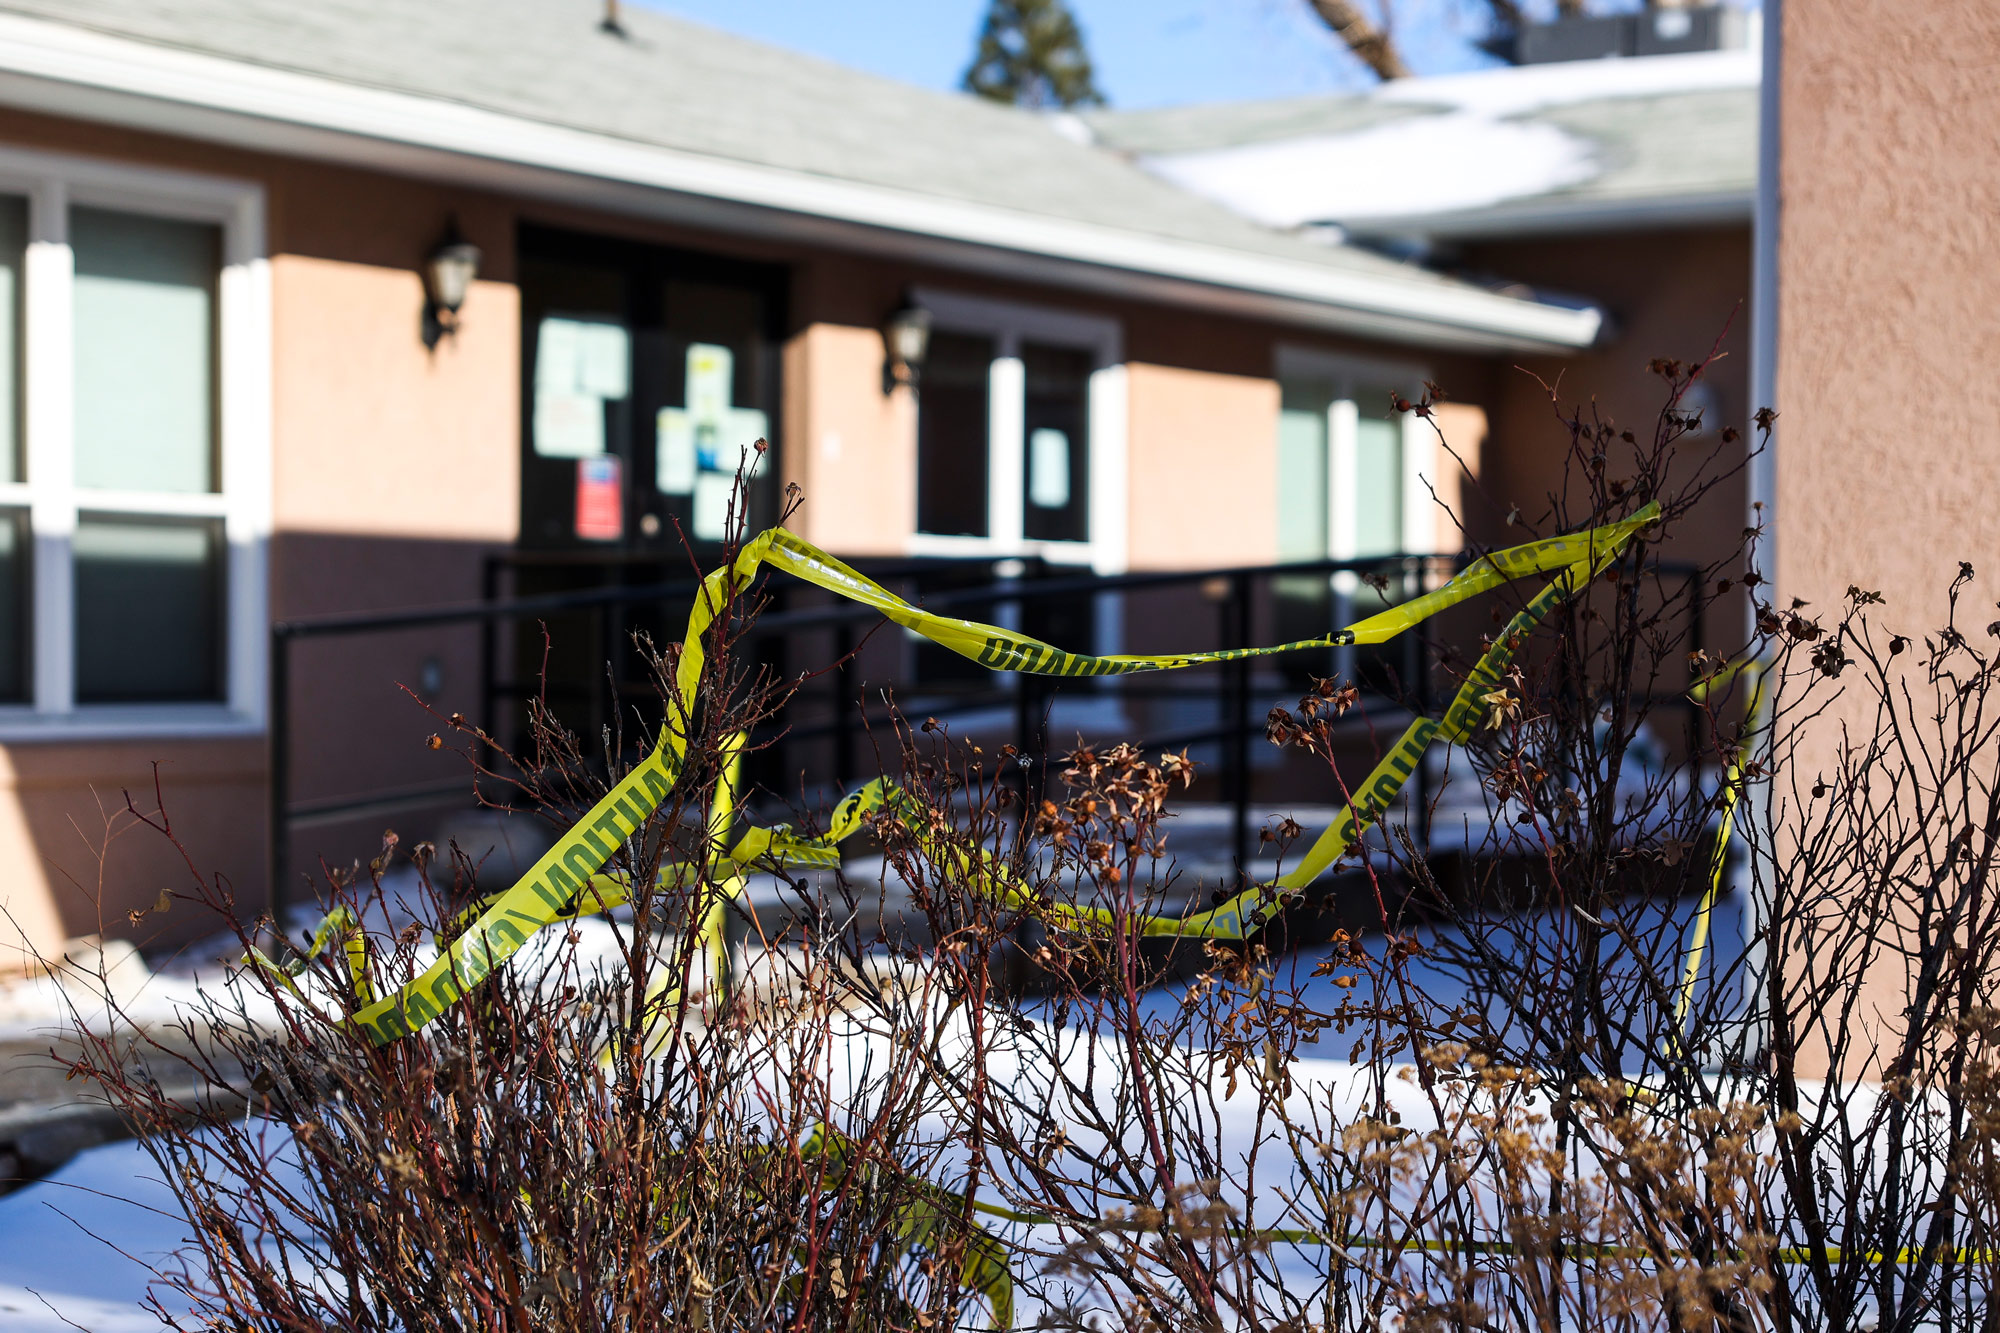 Caution tape sits in front of the Good Samaritan Society nursing home on December 30, 2020 in Simla, Colorado. A Colorado National Guard soldier who was deployed at an ongoing COVID outbreak at the nursing home tested positive for a COVID-19 variant.